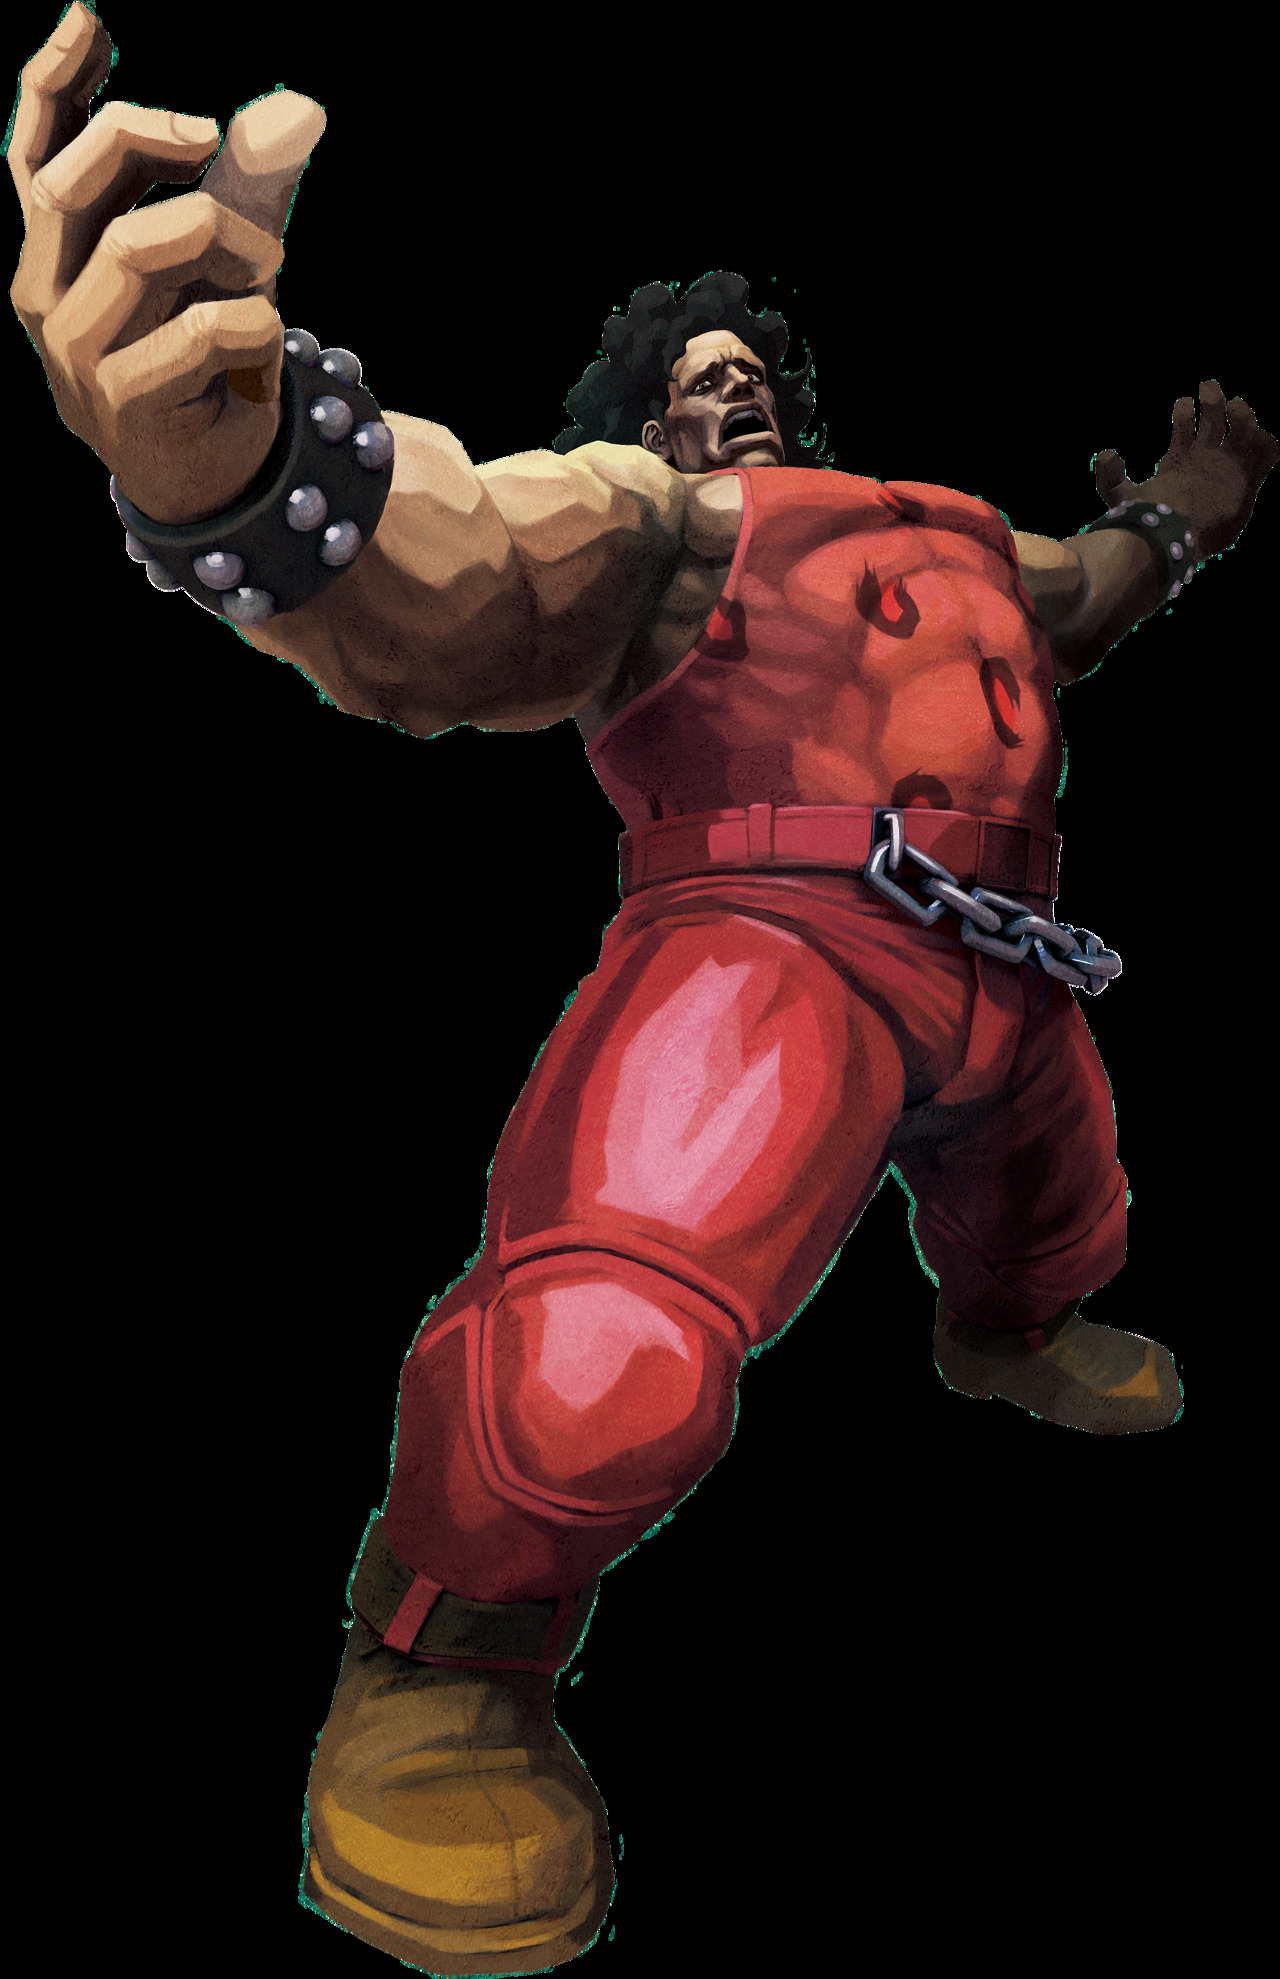 Images Street Fighter X Tekken PC - 142